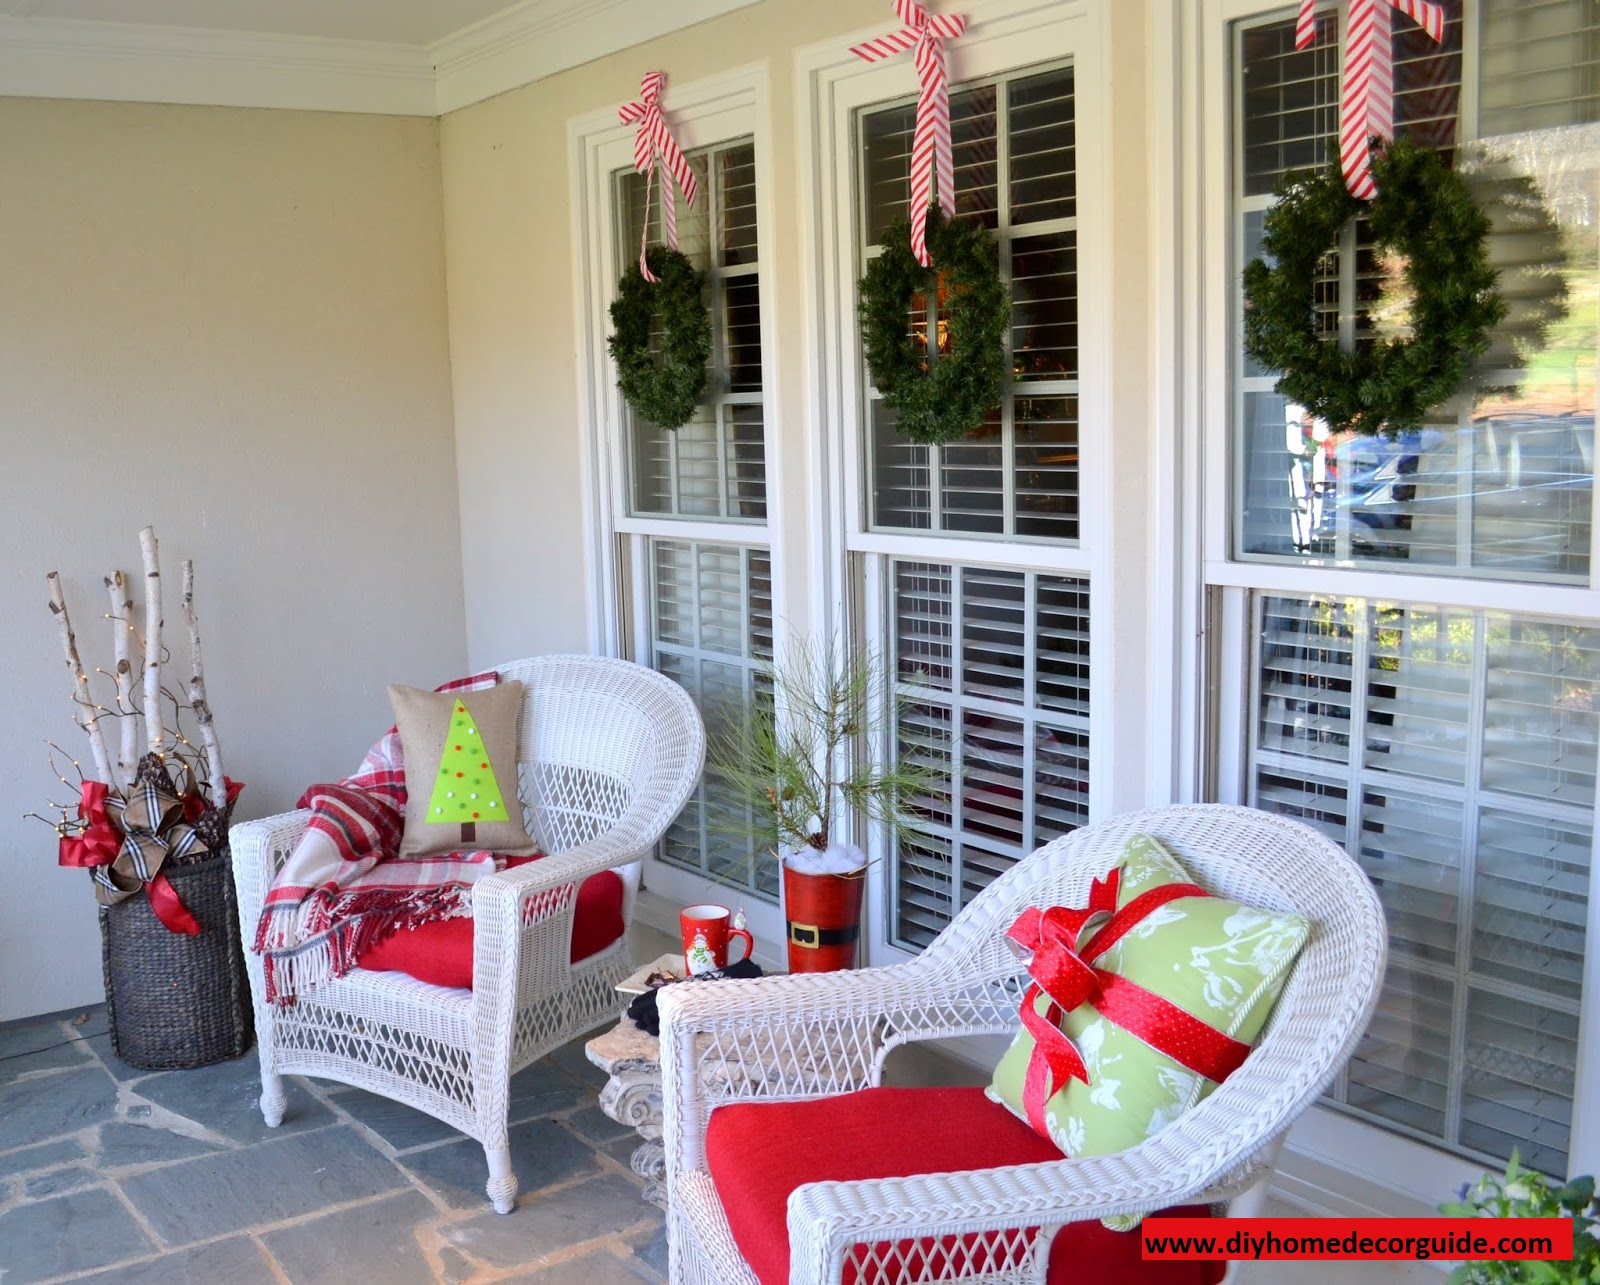 20 diy outdoor christmas decorations ideas 2014 outdoor christmas decor ideas aloadofball Choice Image